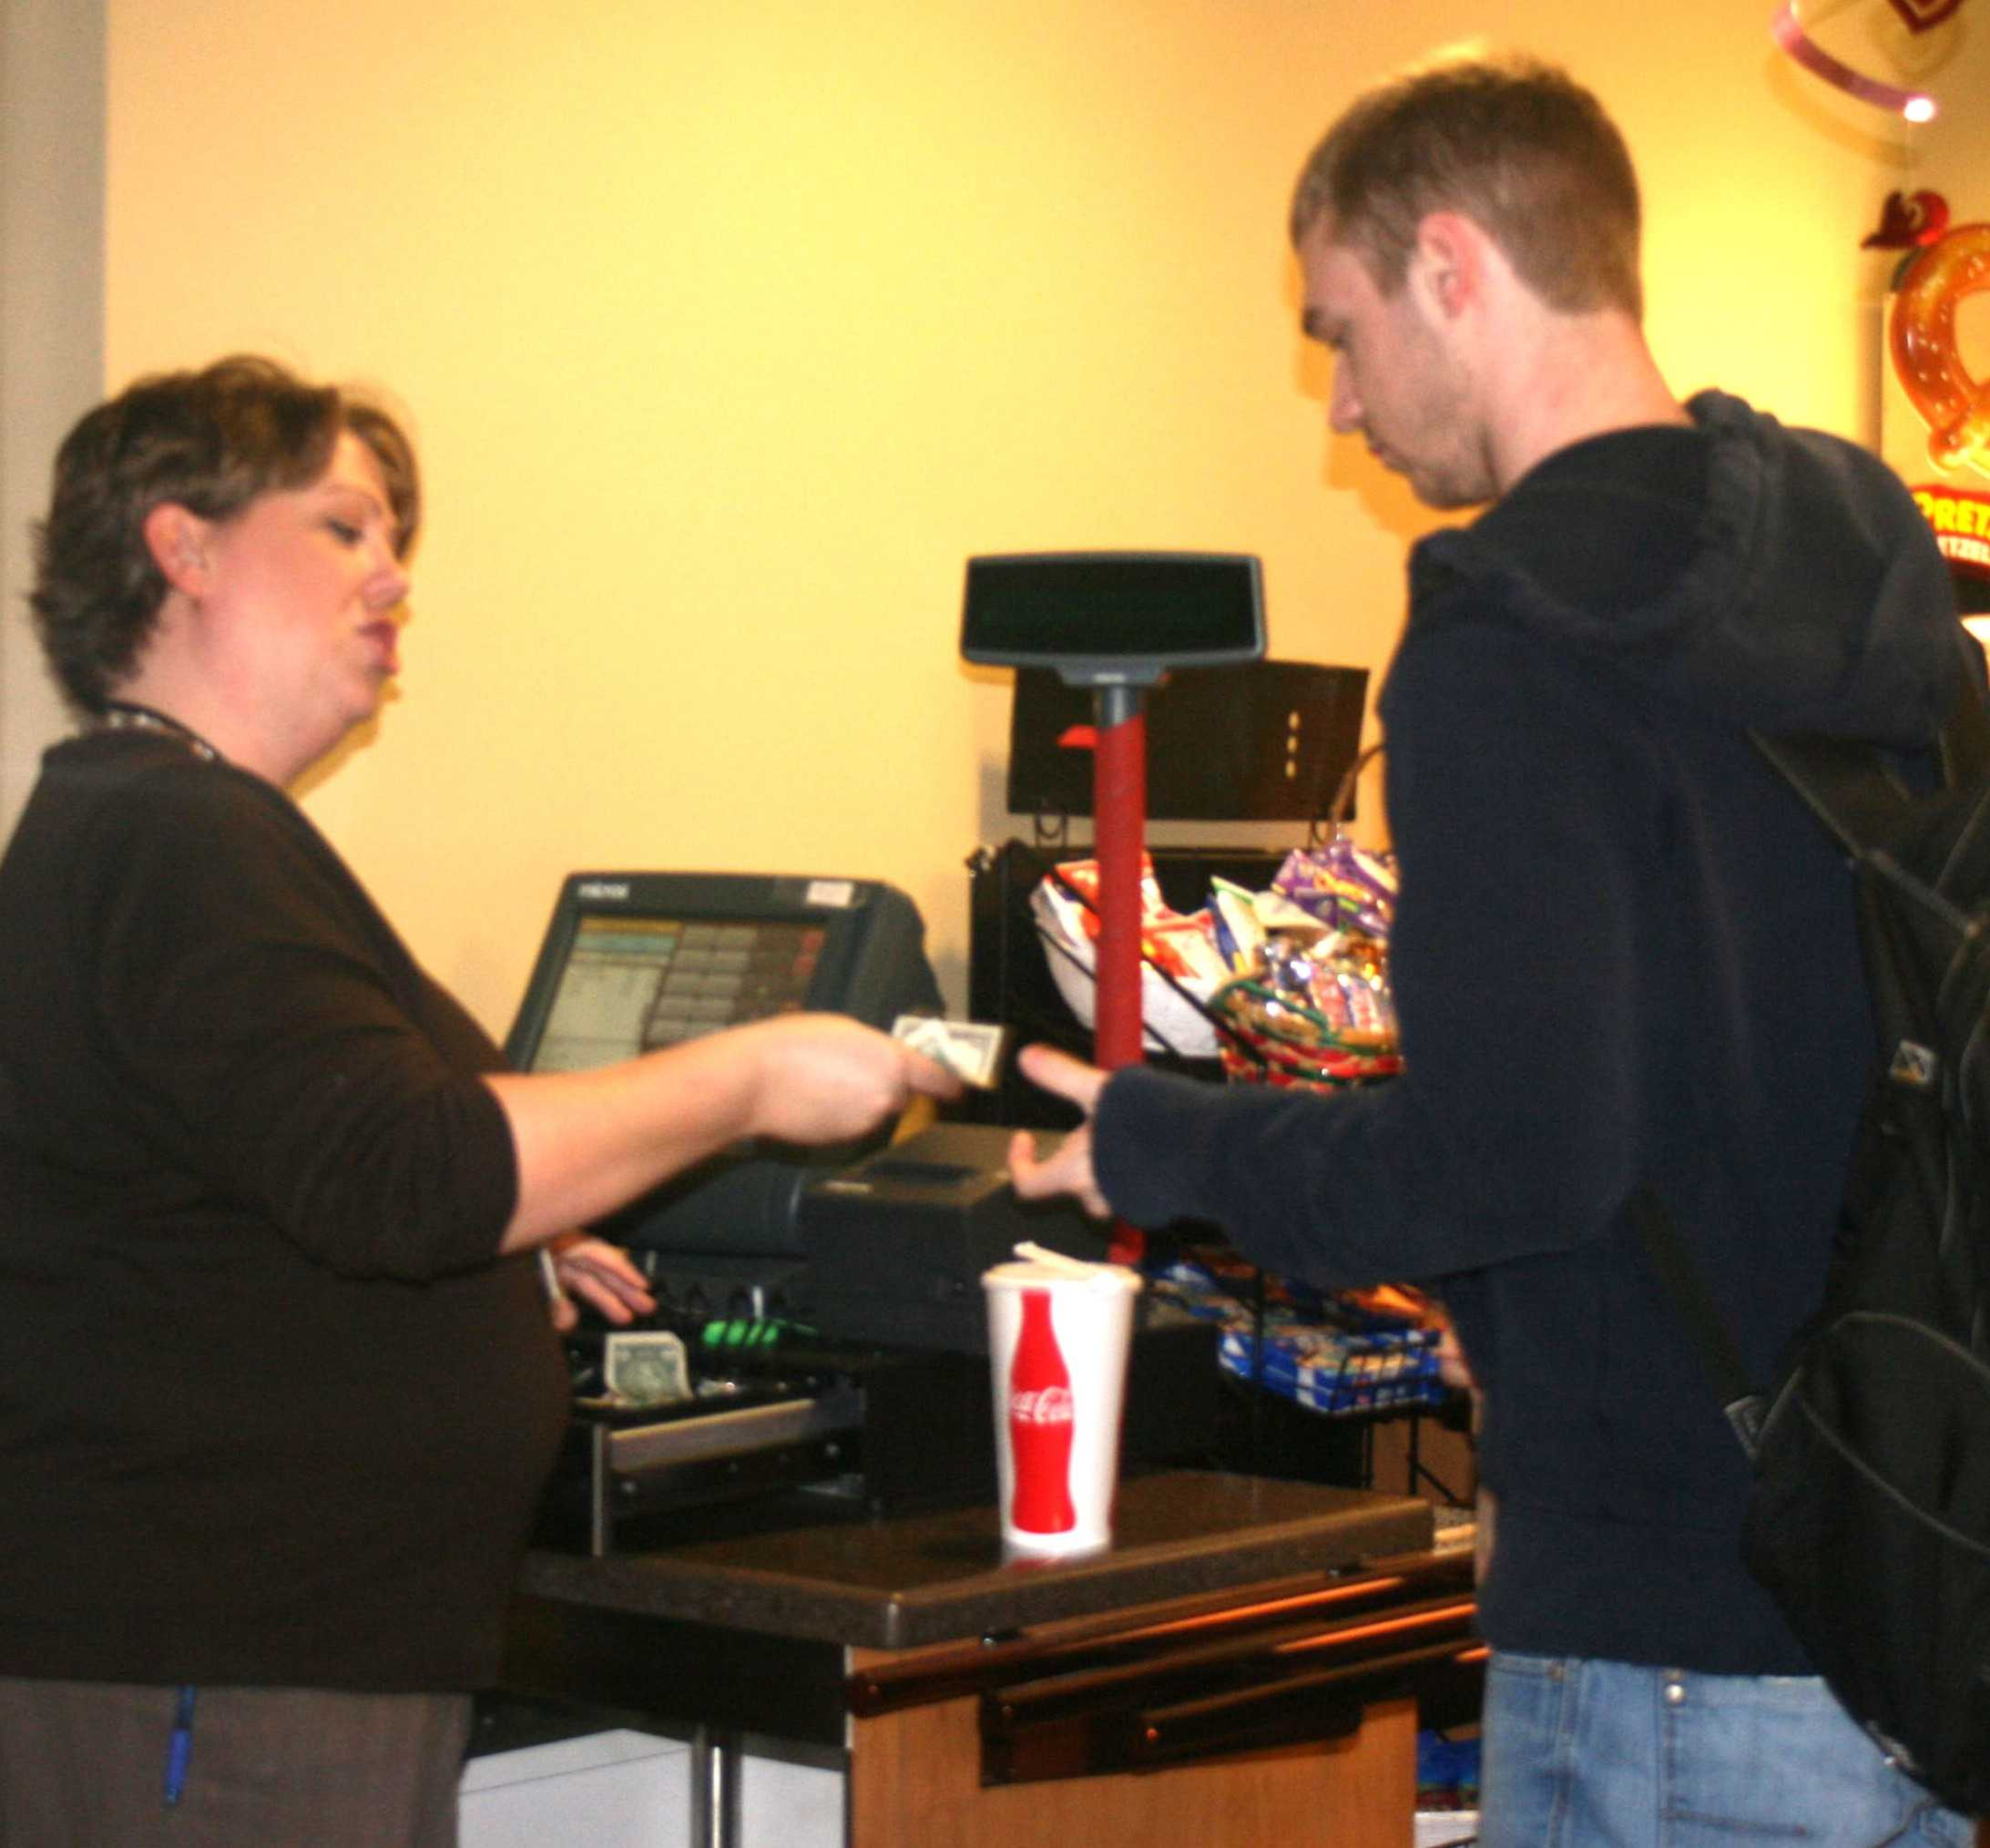 Ius Dining Services Conducts Food Court Survey The Horizon